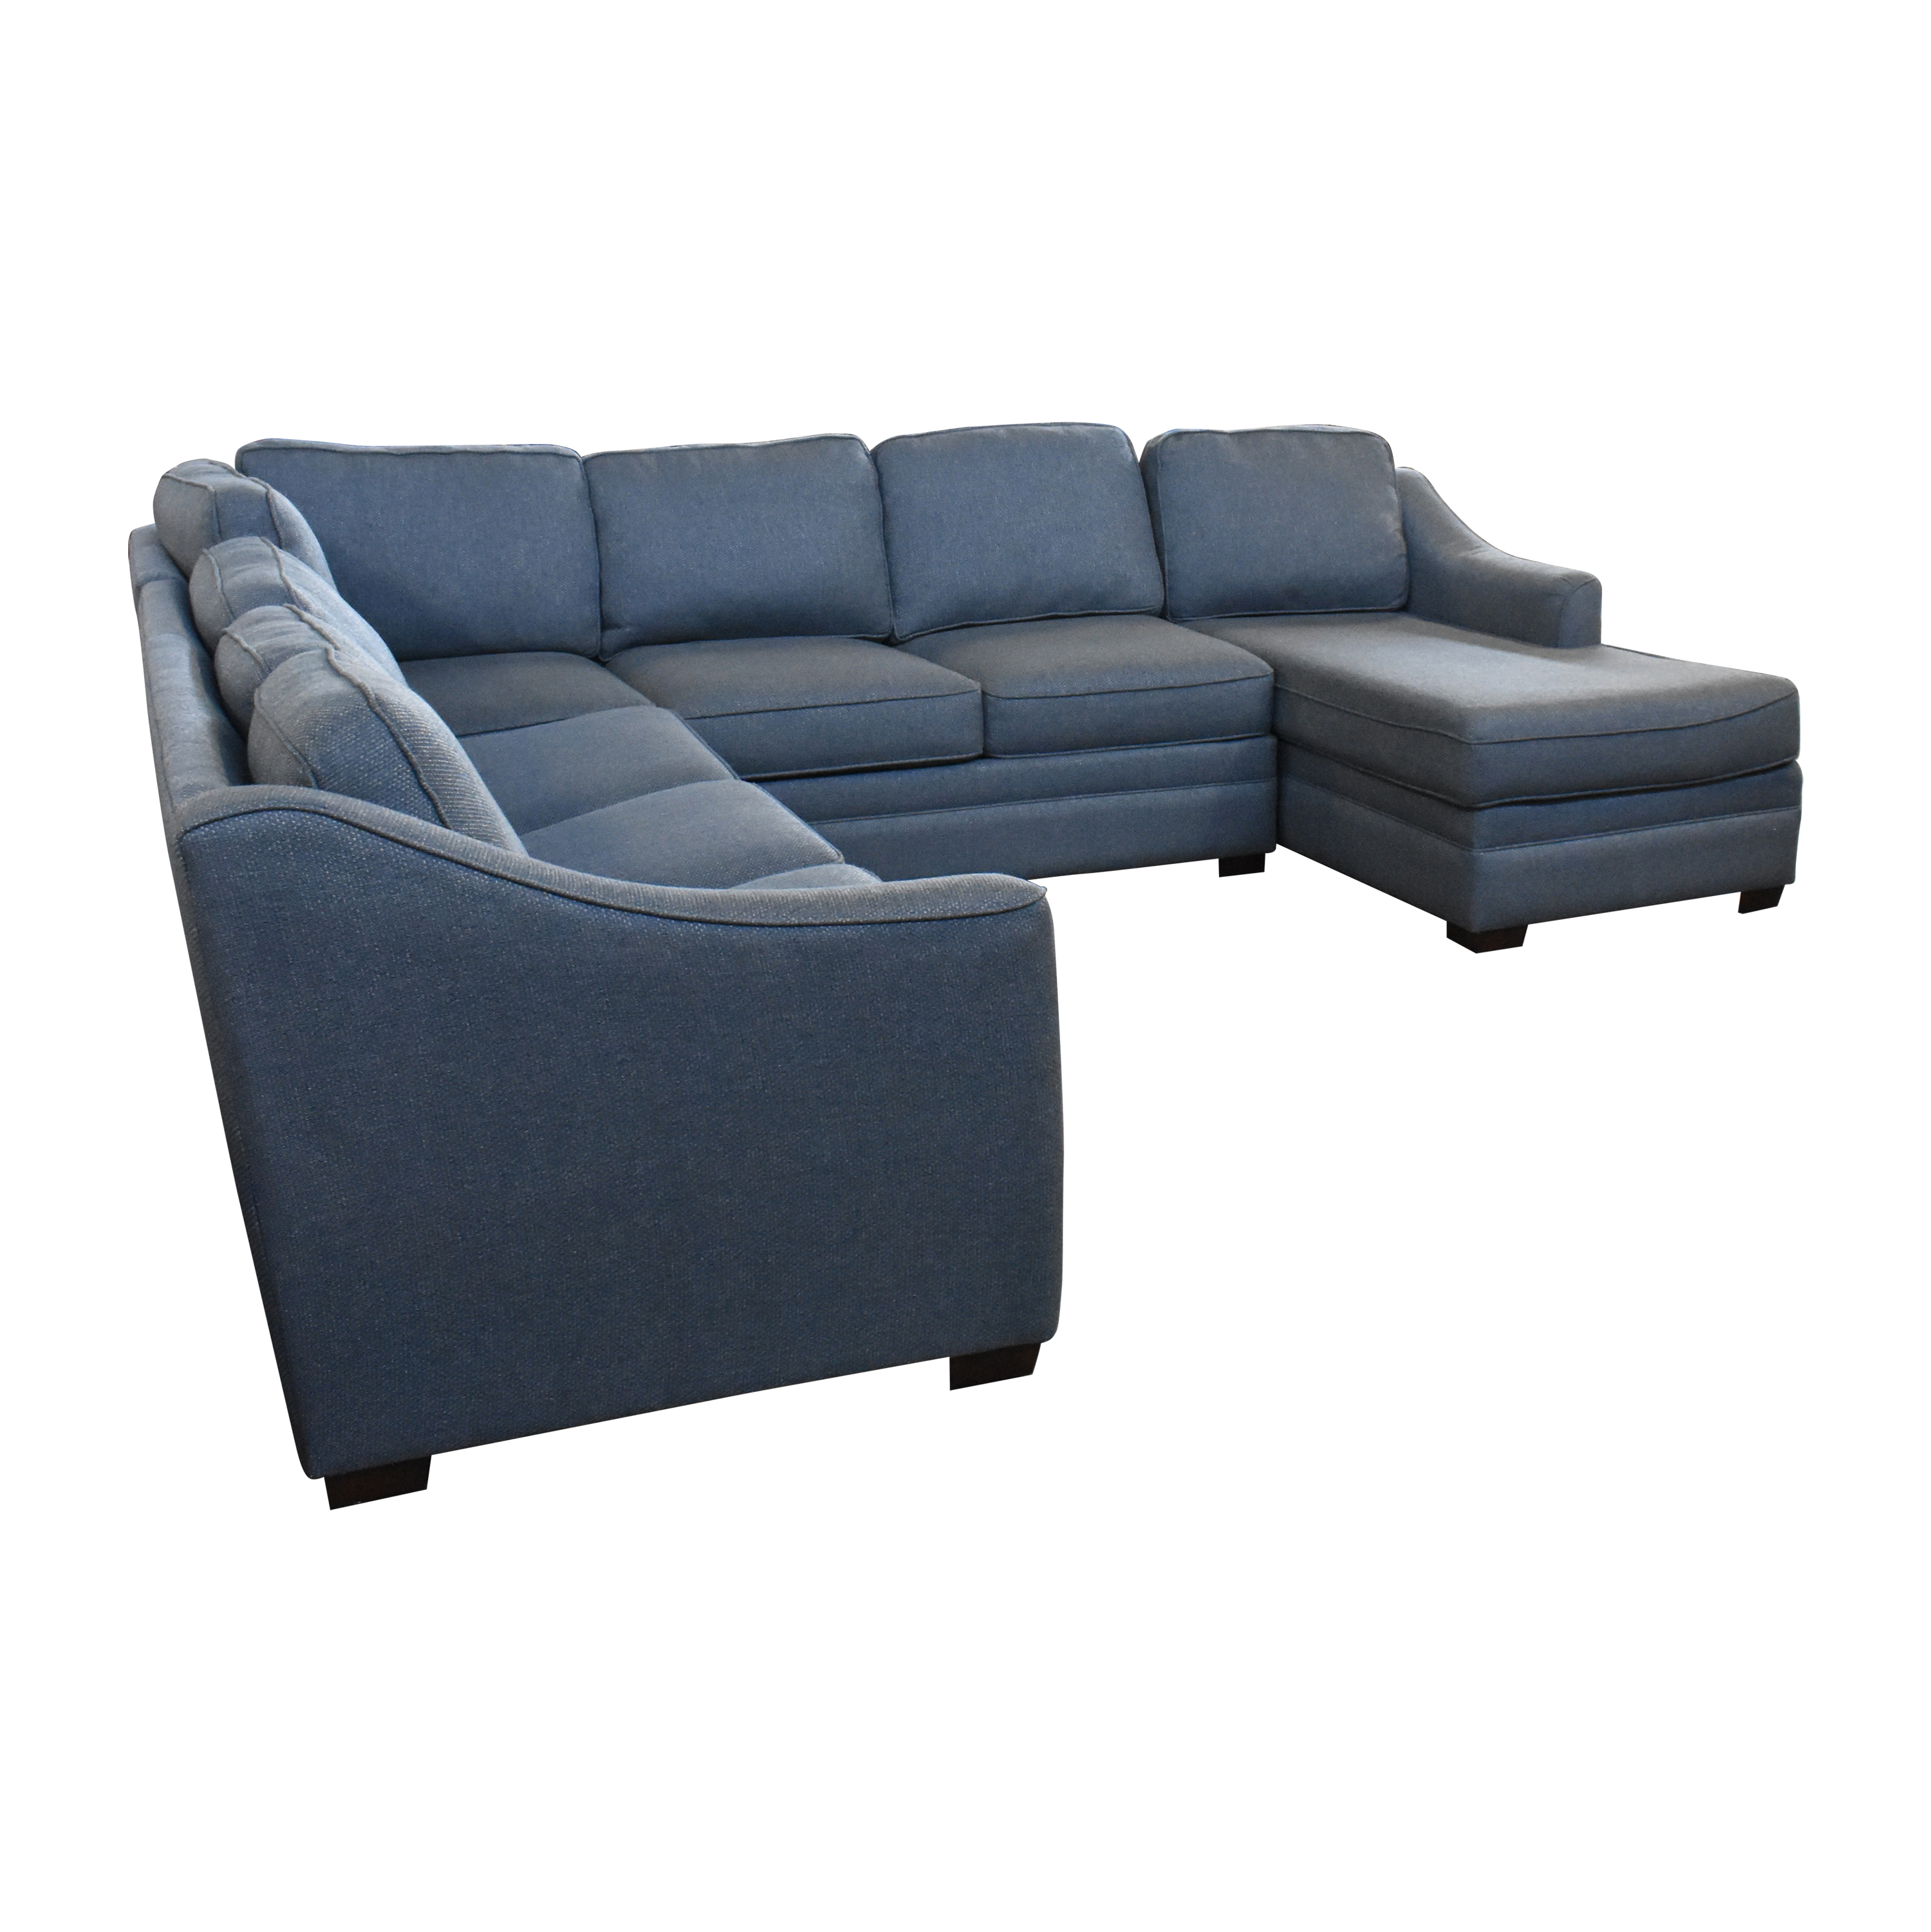 Craftmaster Furniture Craftmaster Furniture Carla Chaise Sectional coupon